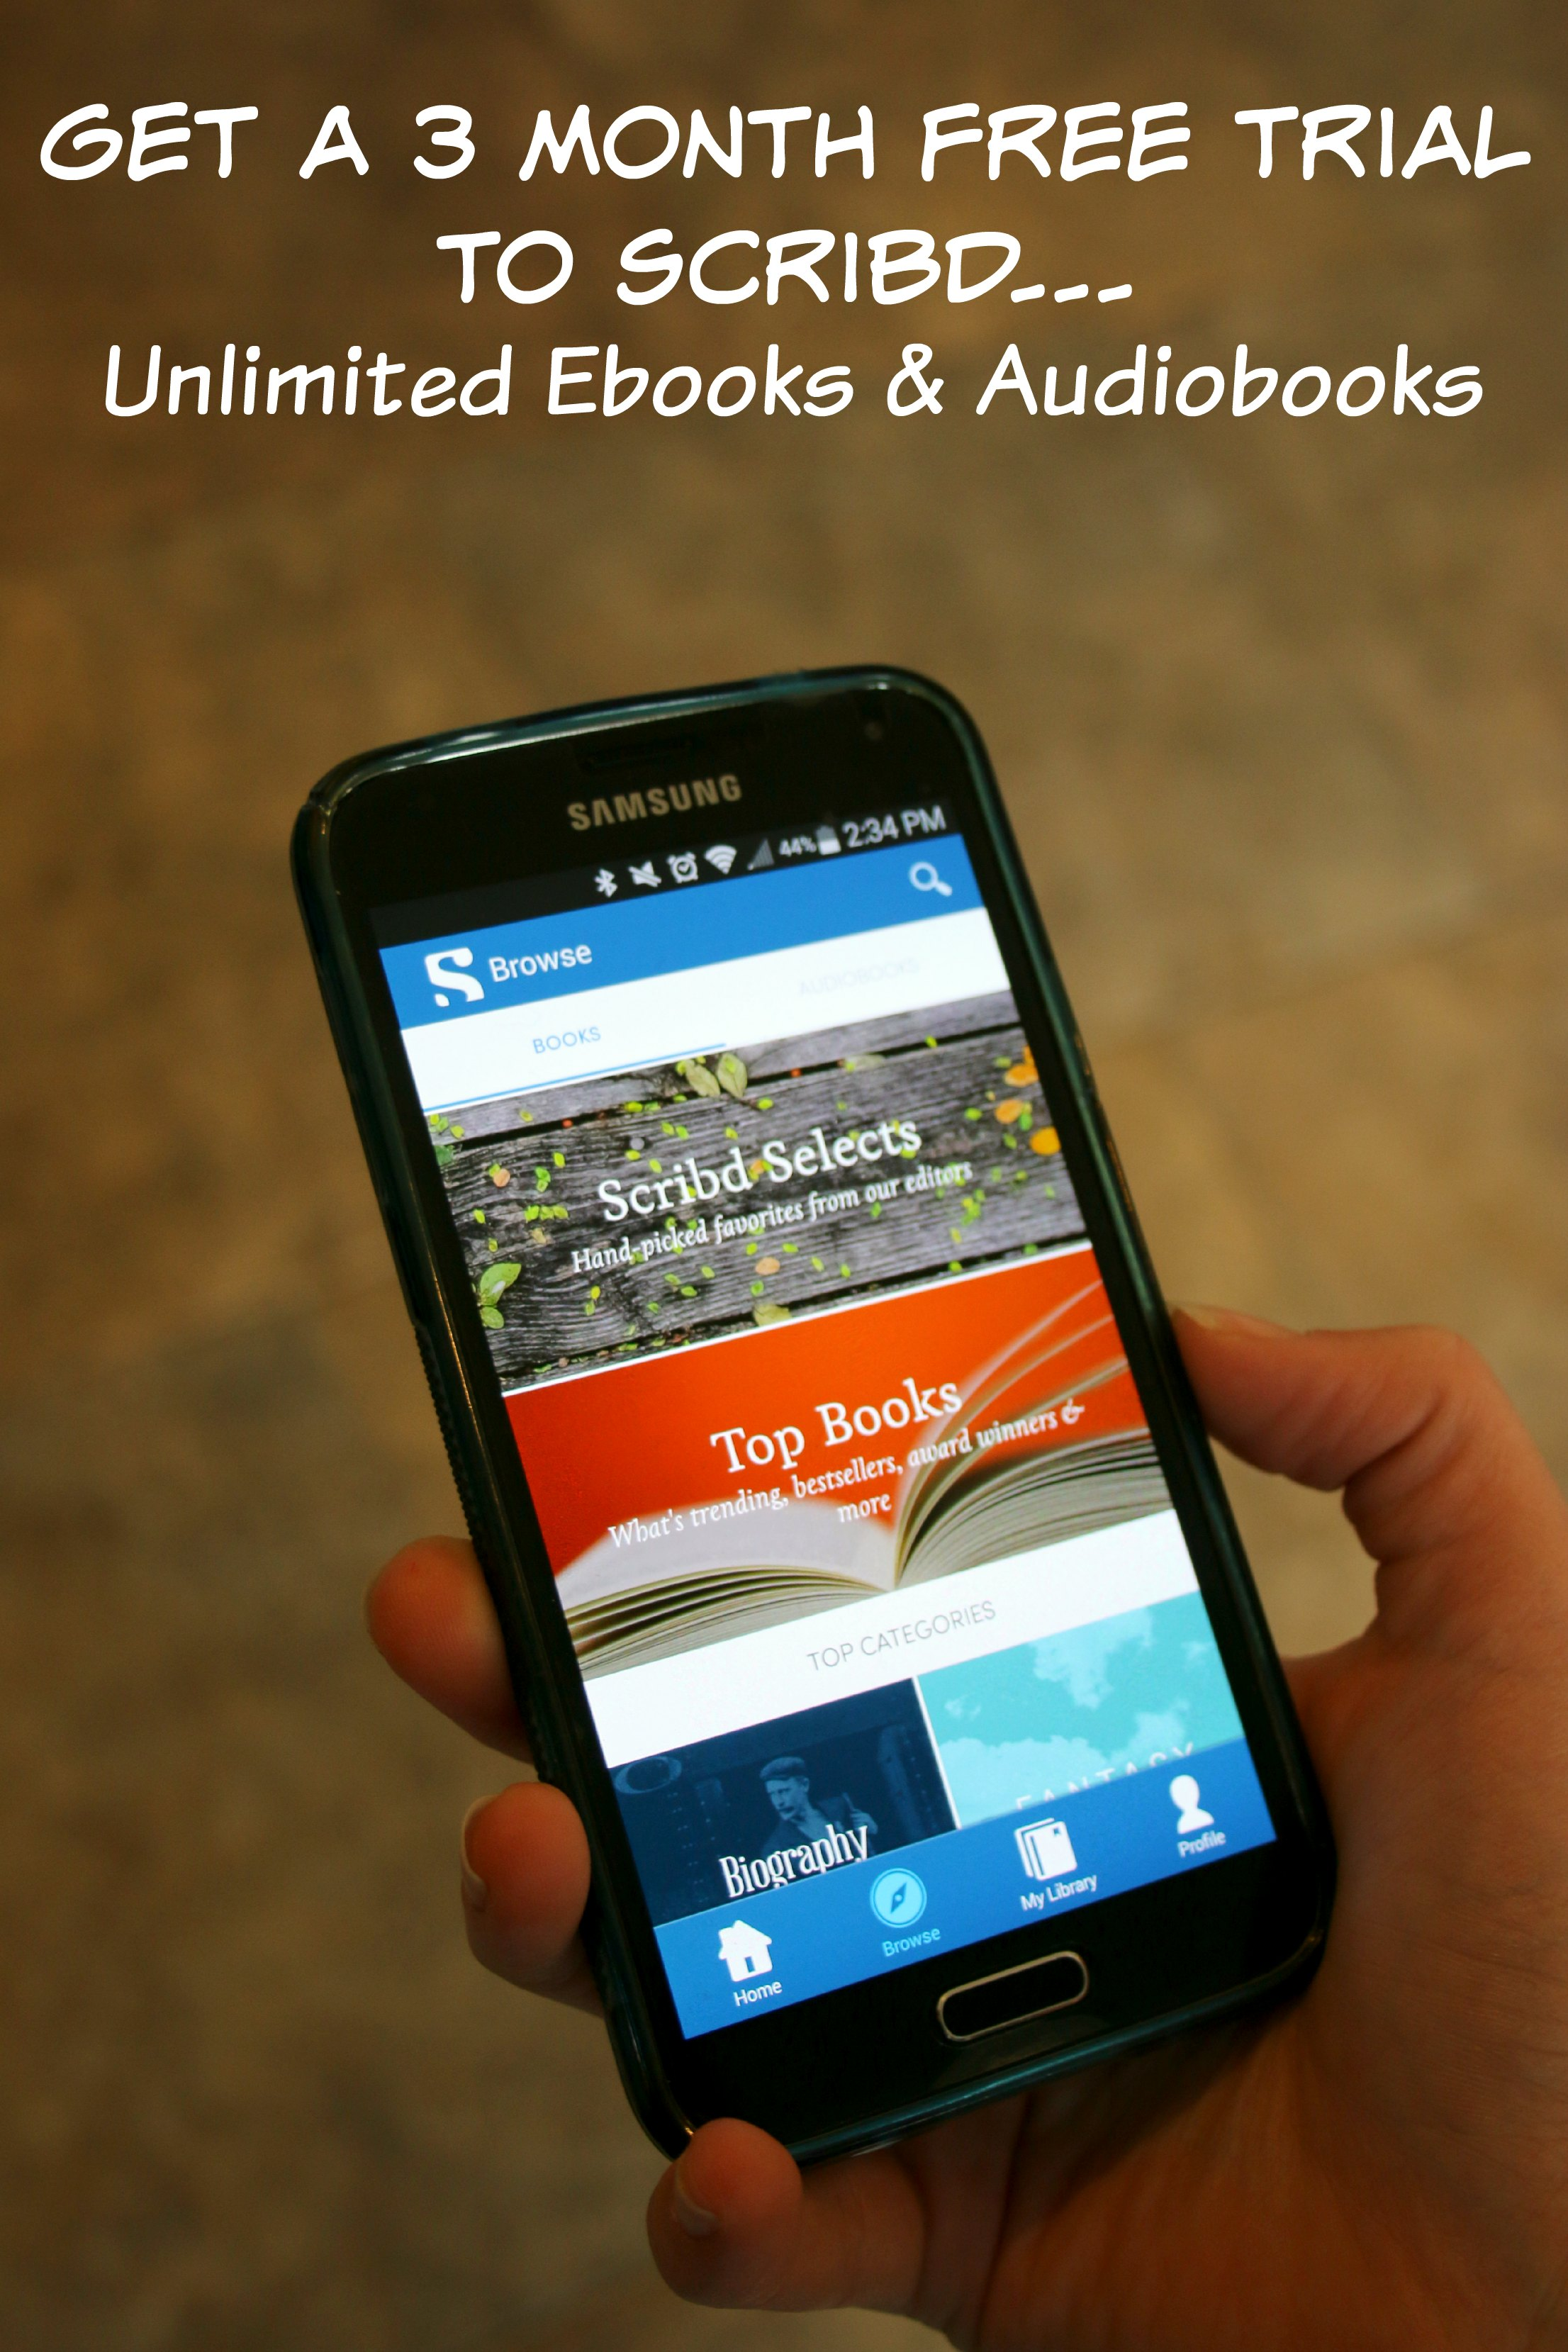 scribed unlimited ebooks